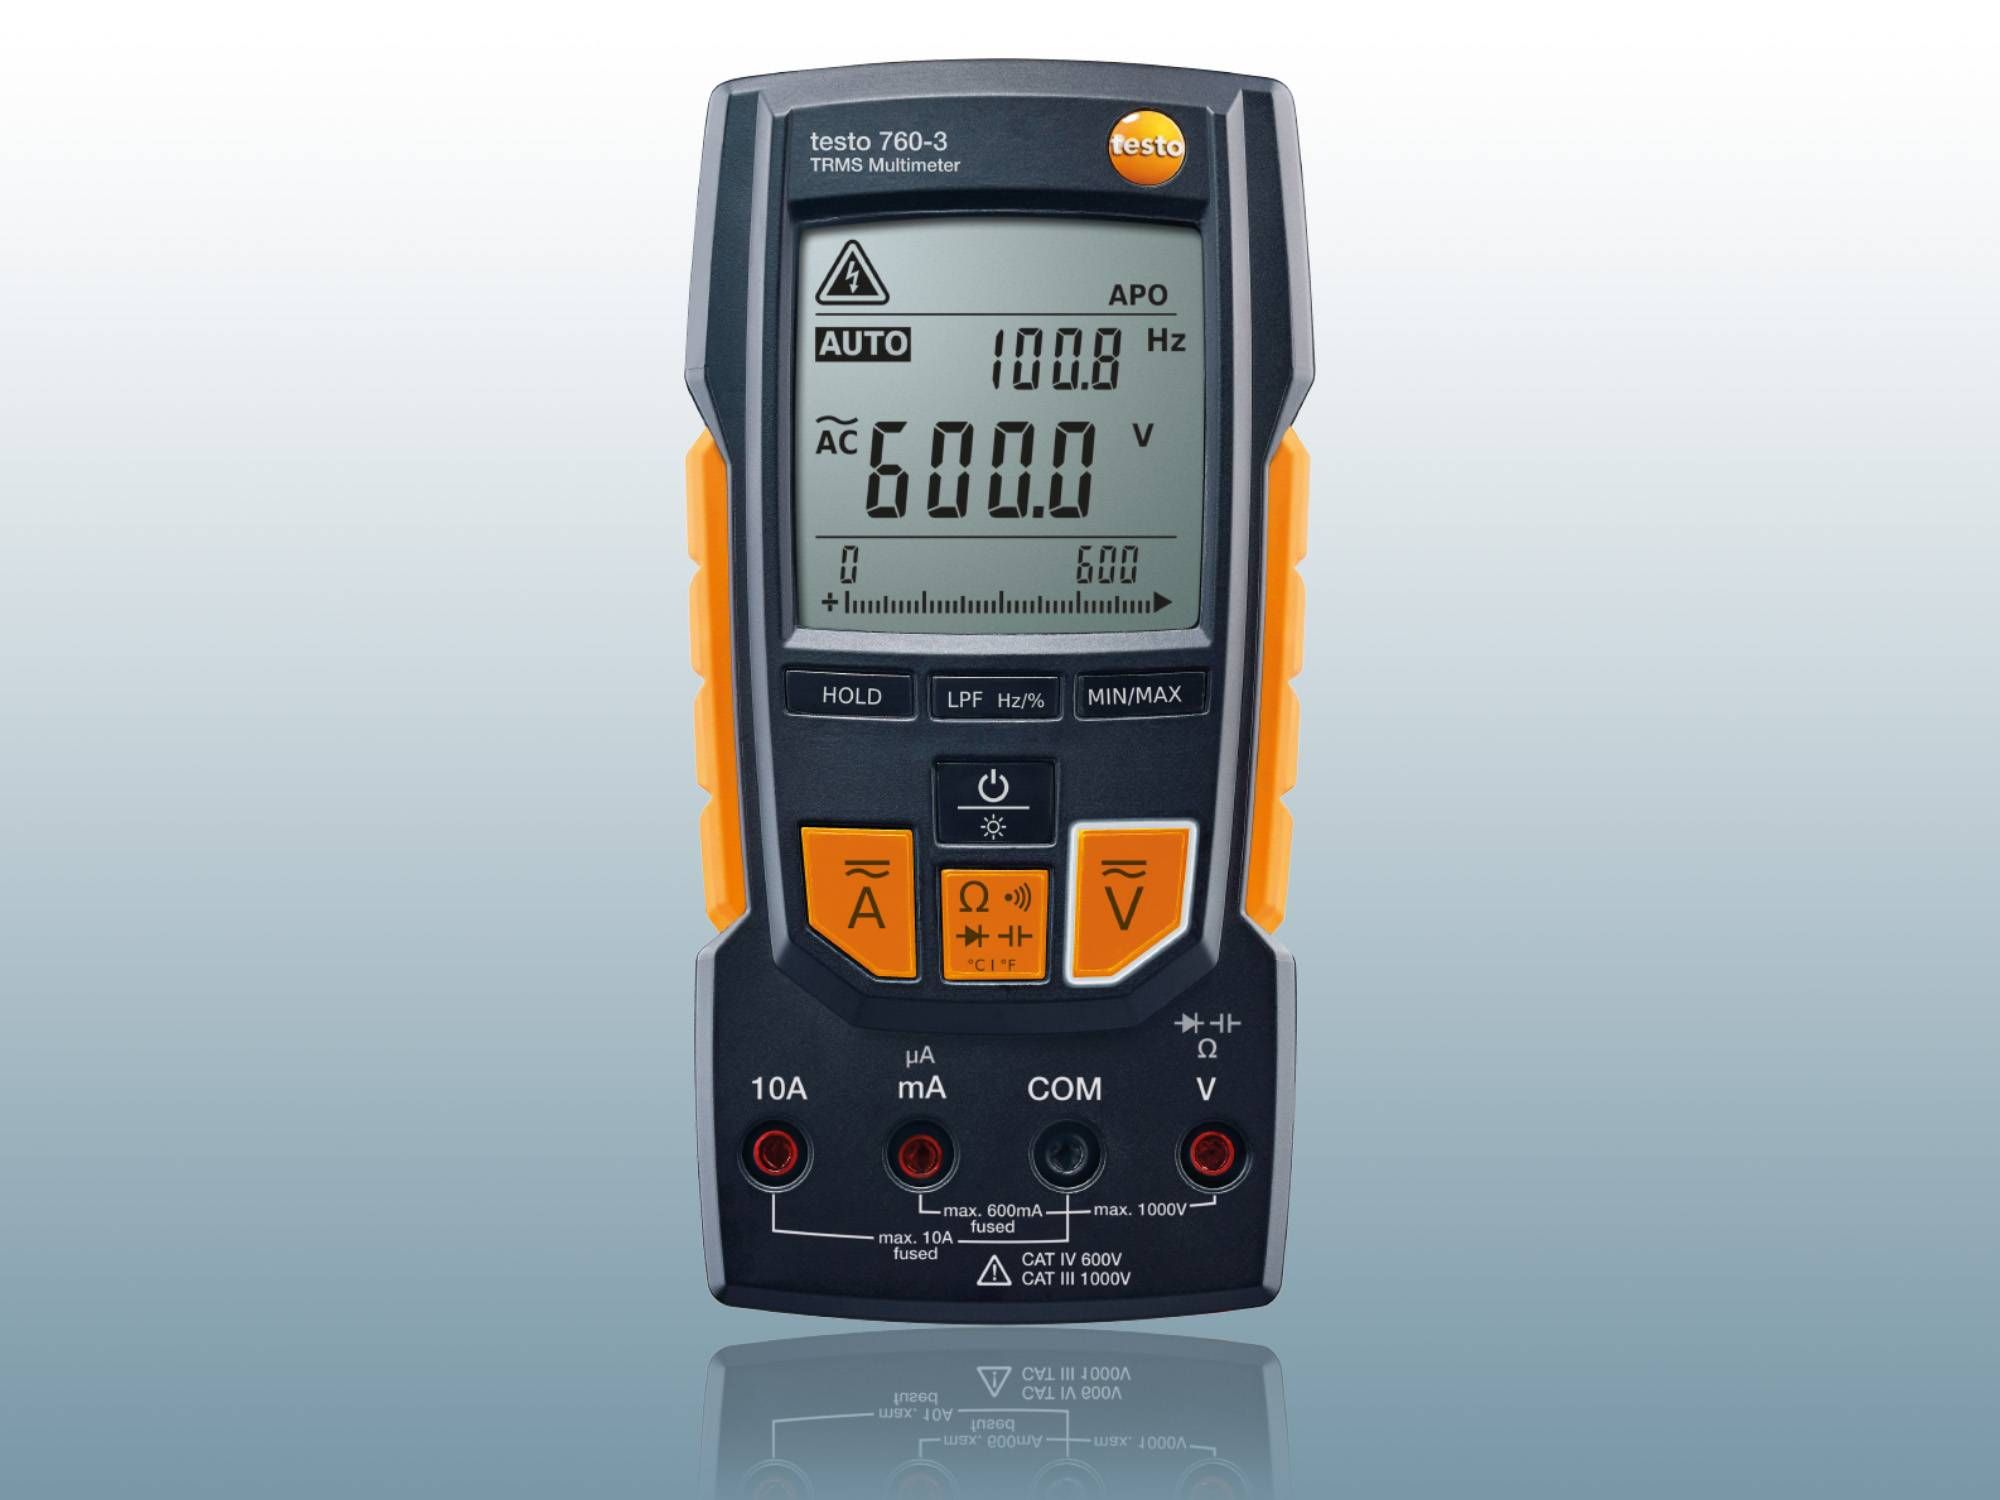 testo 760-3 - Digitale multimeter